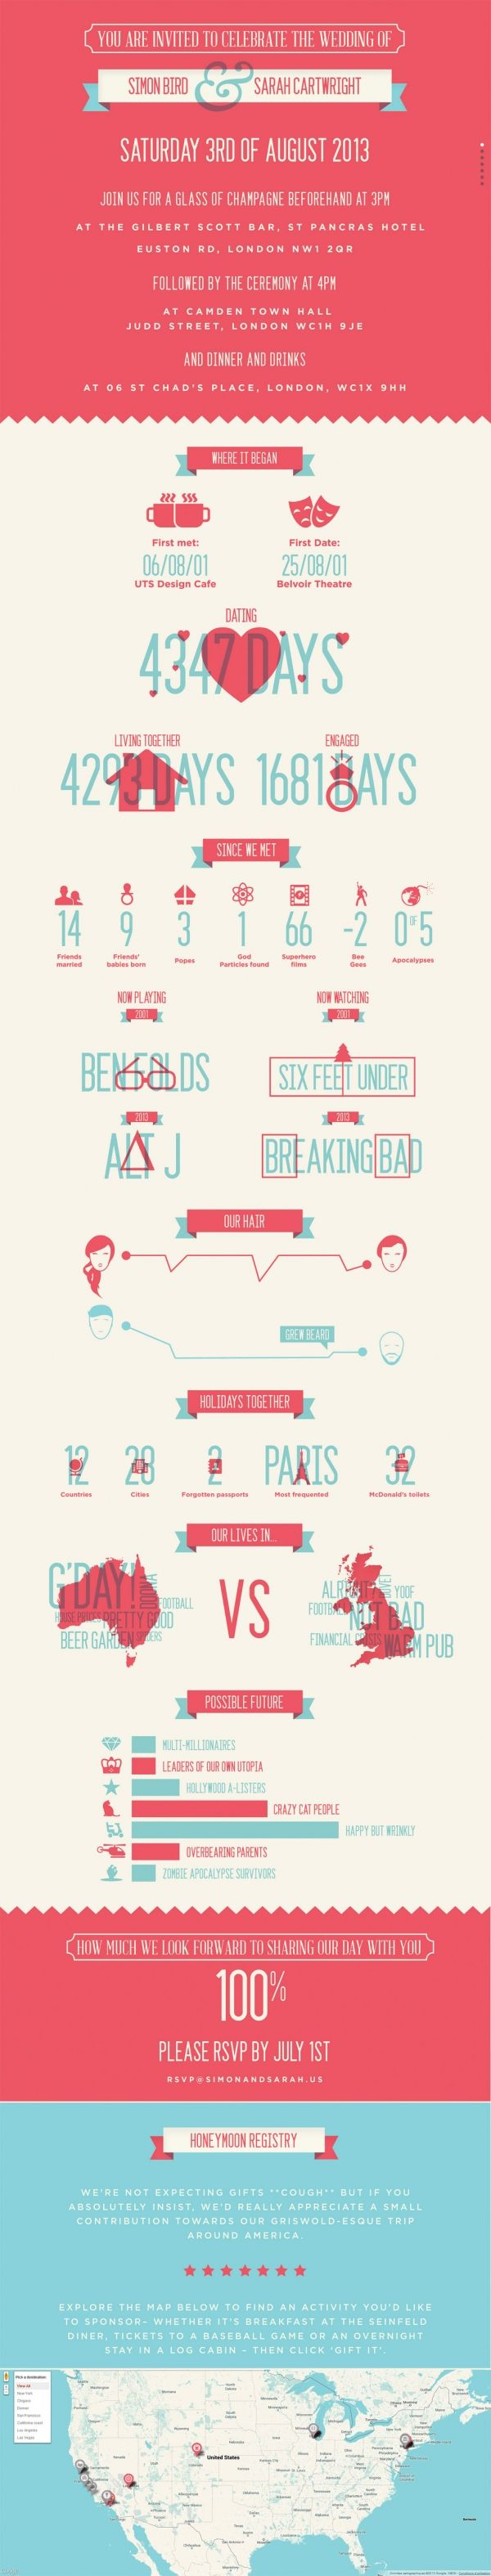 infographie-mariage